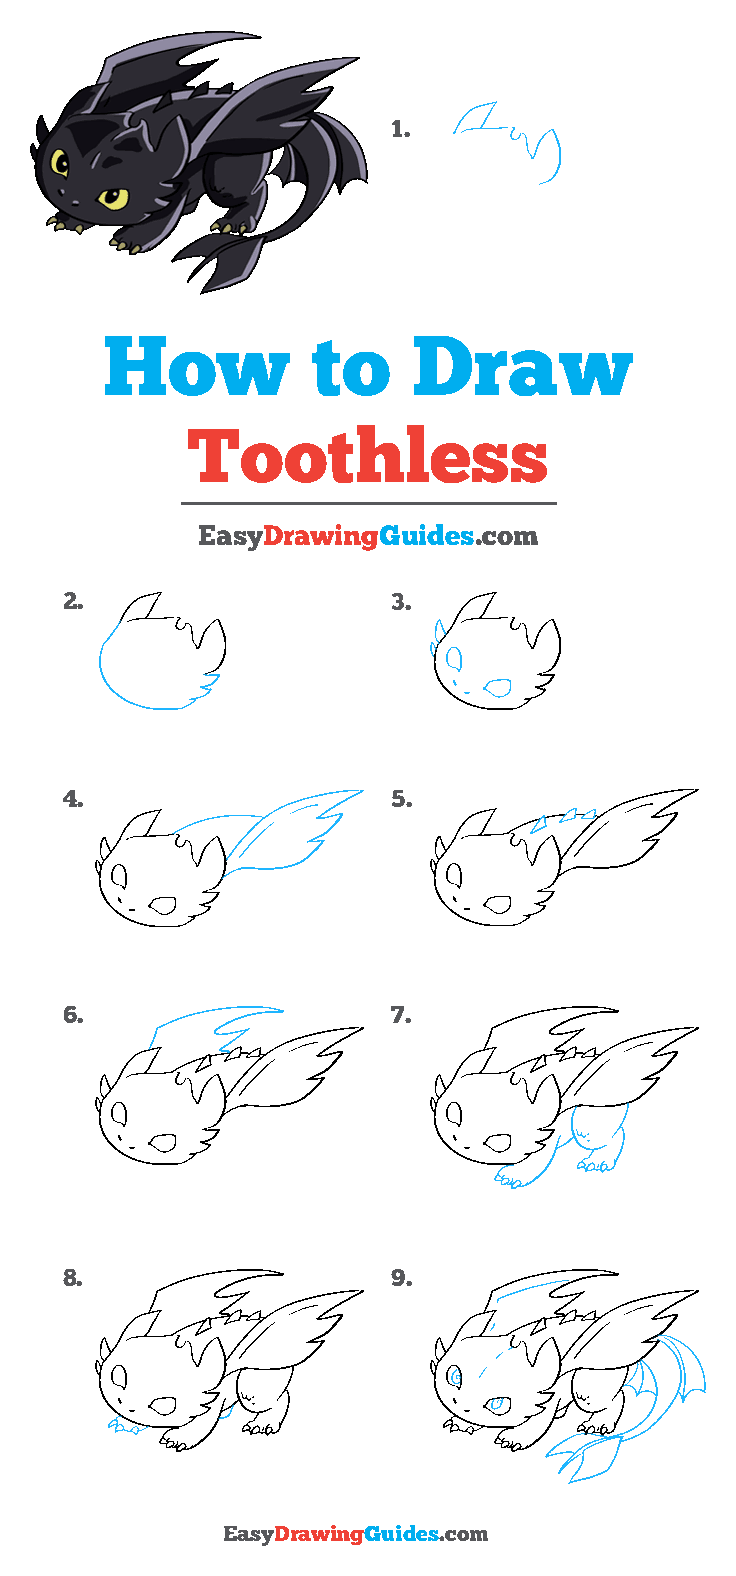 How to Draw Toothless from How to Train your Dragon Step by Step Tutorial Image